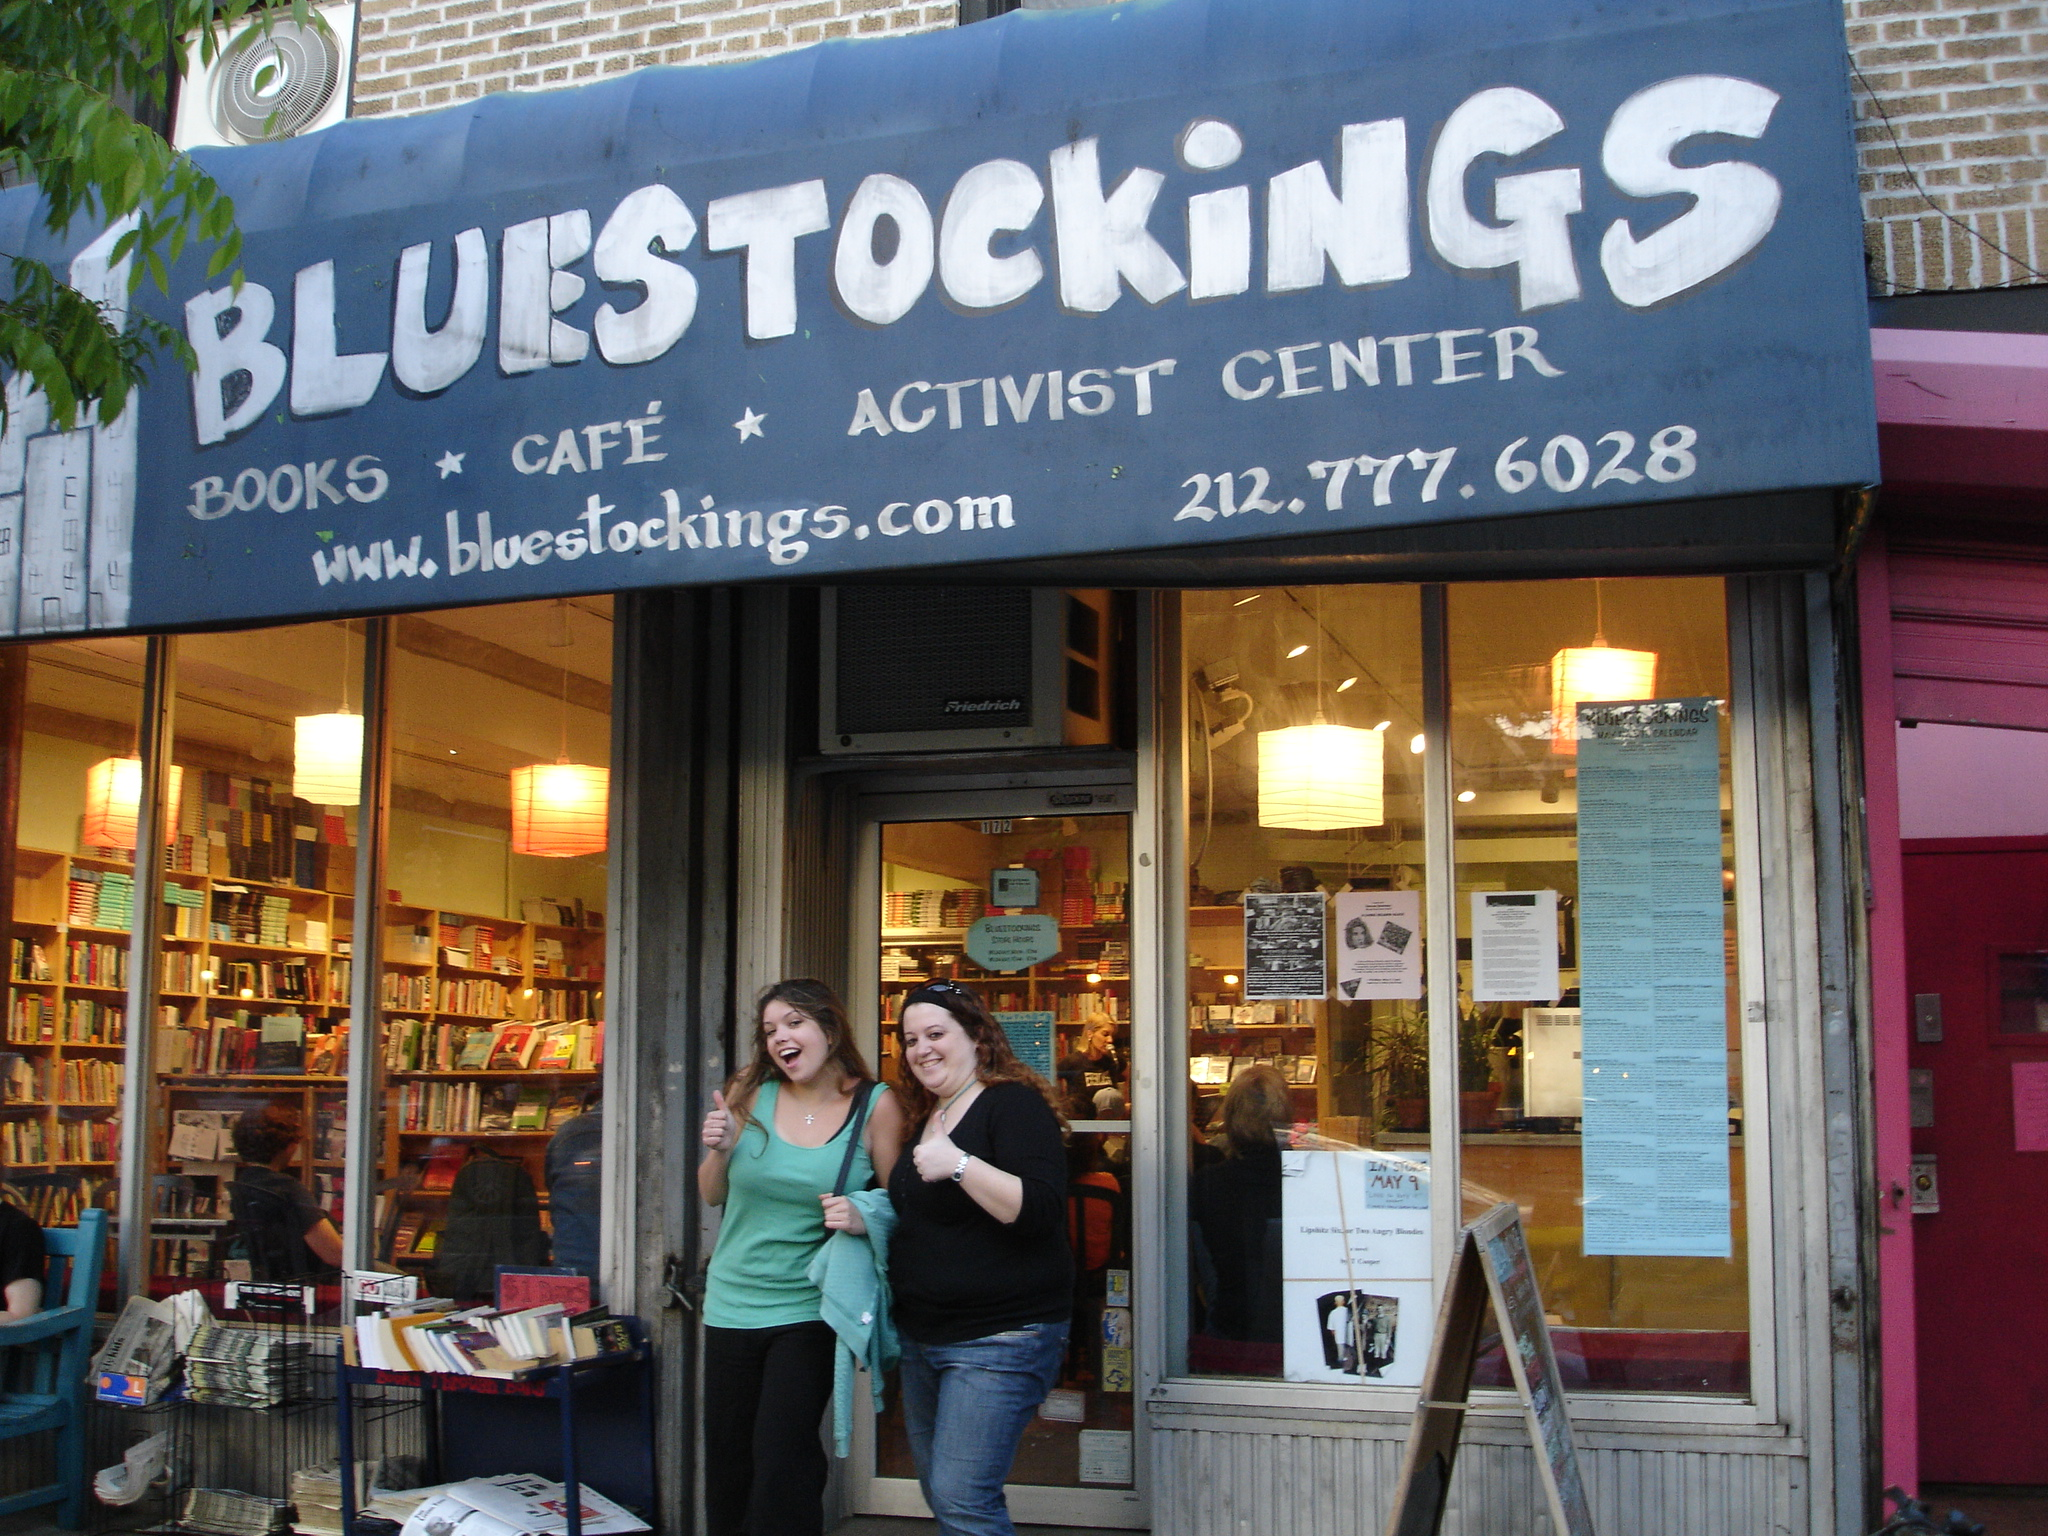 Bluestockings NYC seeks a new location